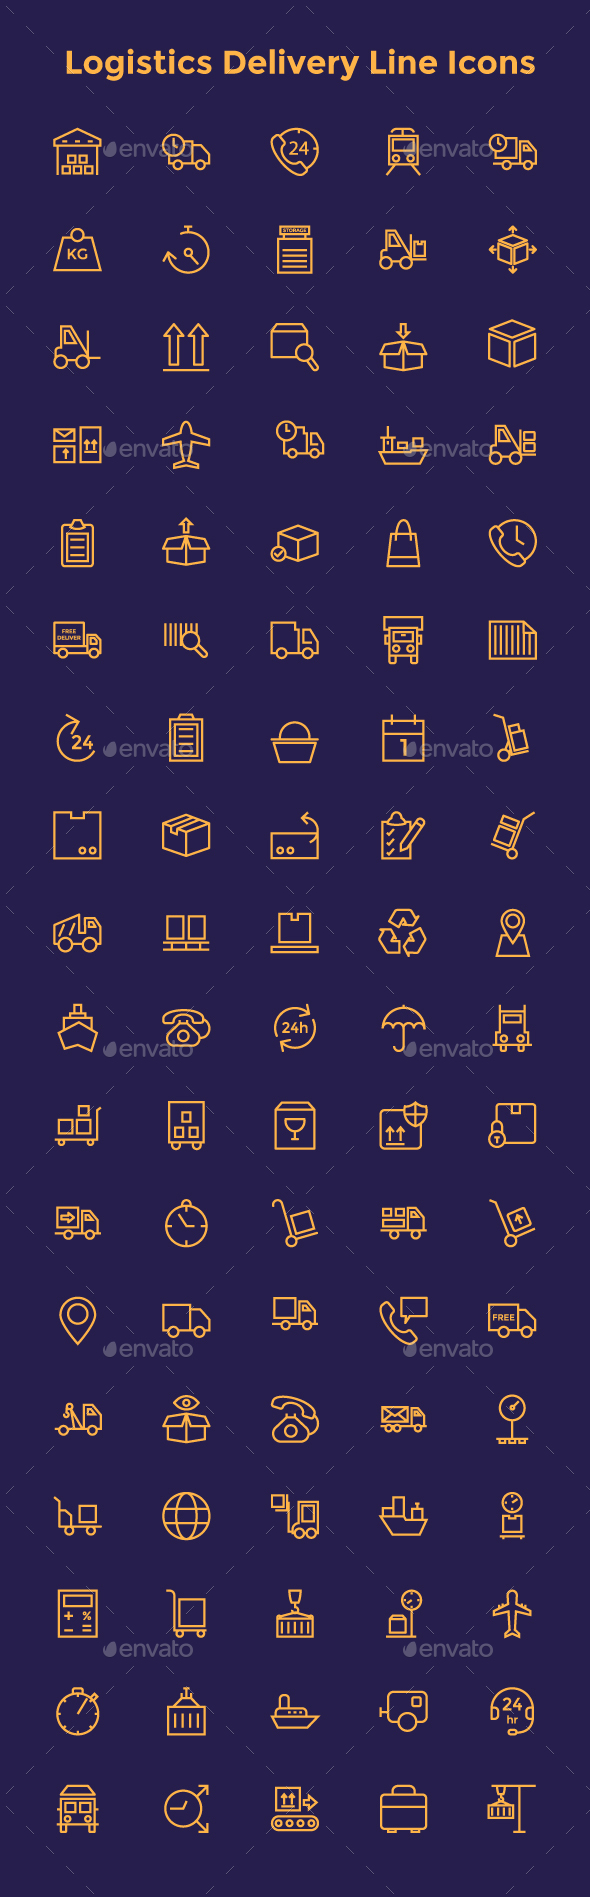 Logistics Delivery Line Icons - Icons